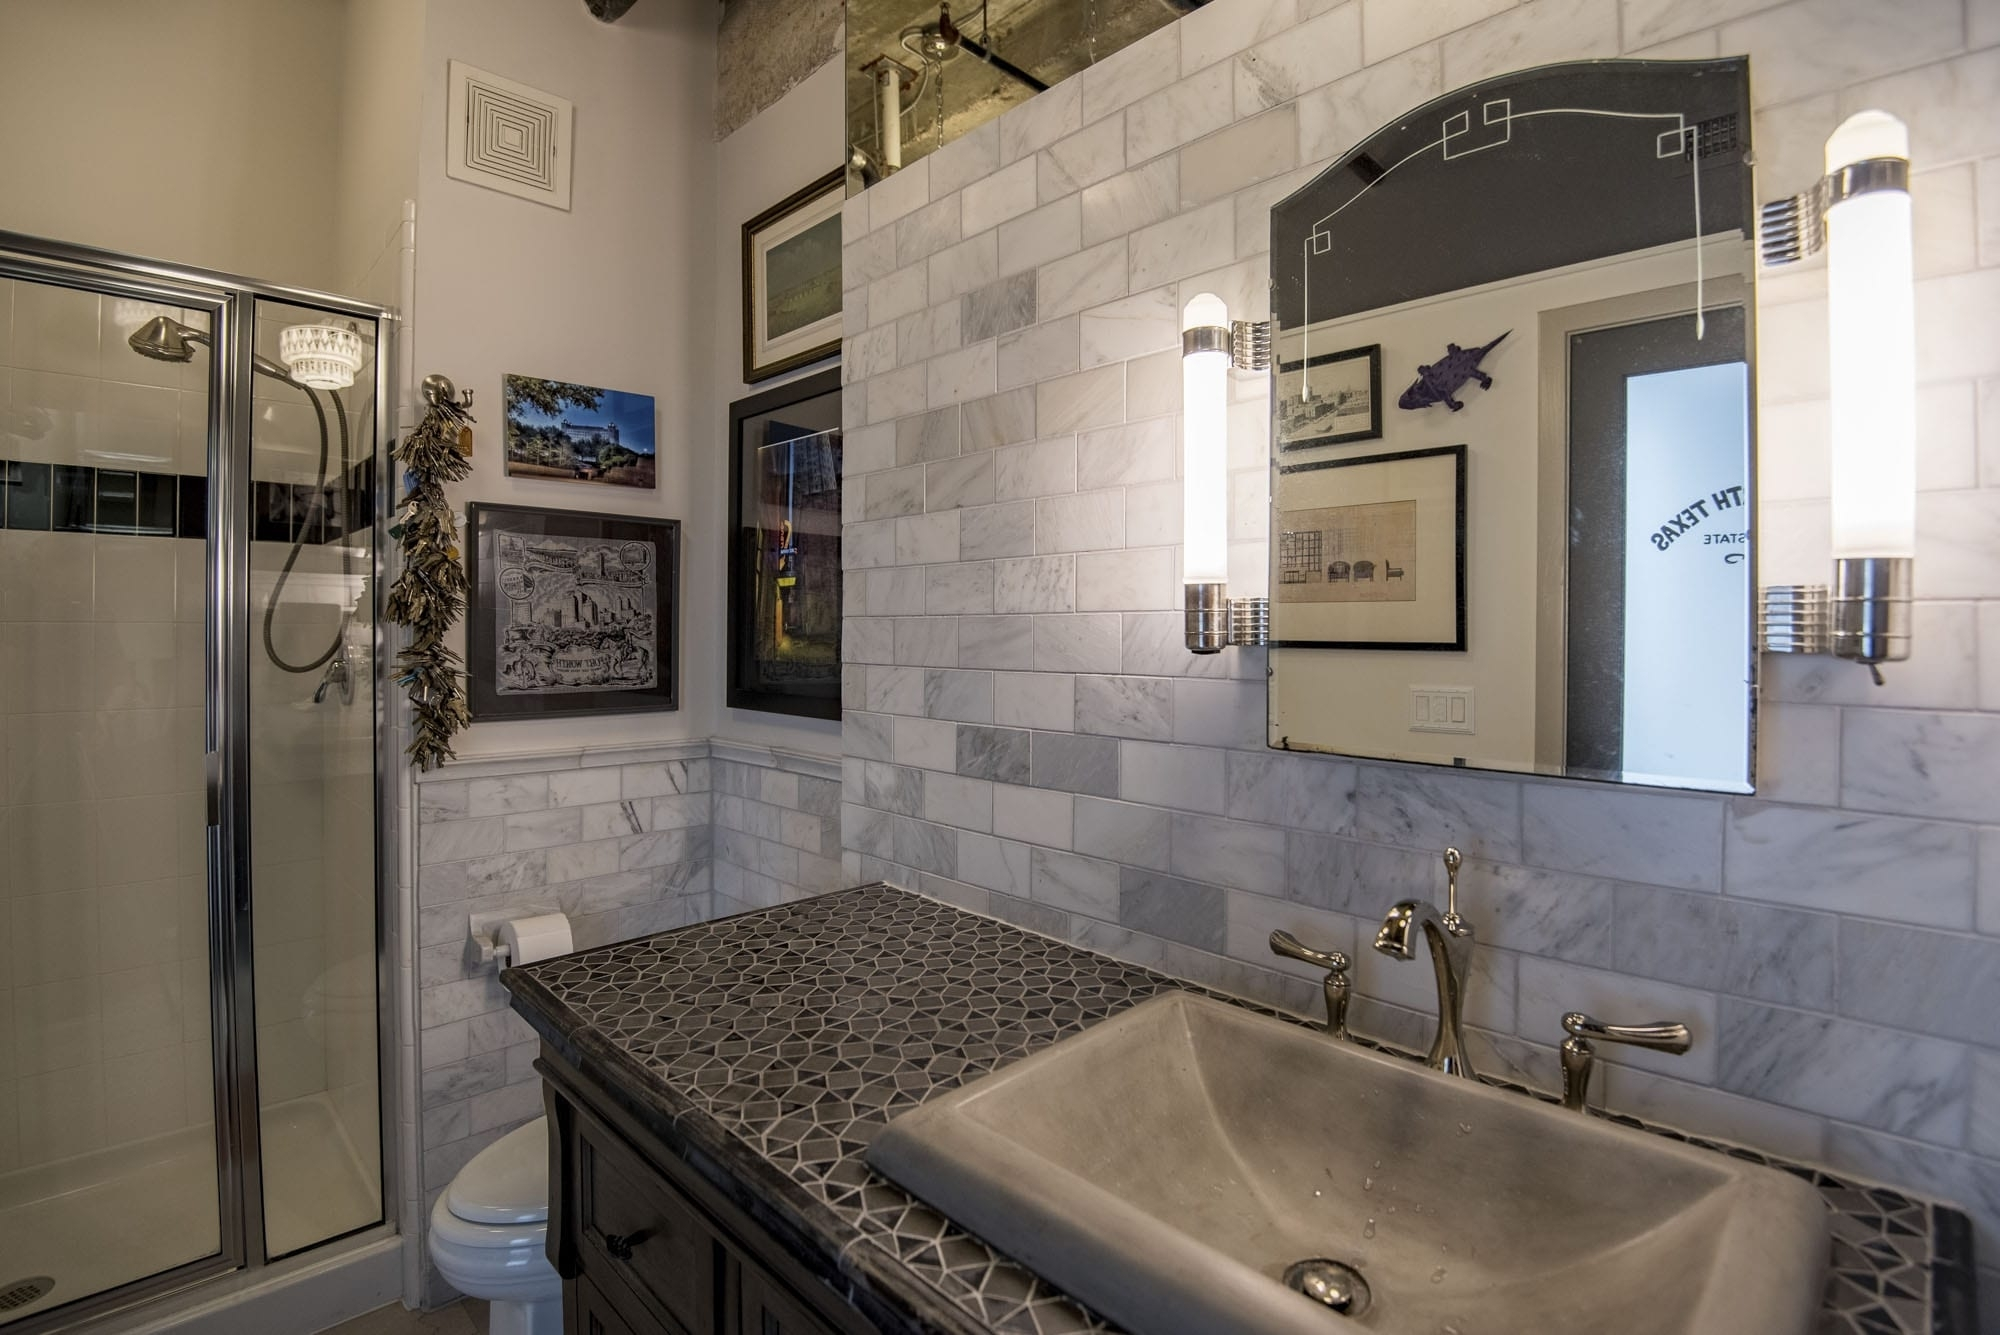 Our Guest Bathroom Remodel | Tim D Young Raised Ranch Bathroom Remodel